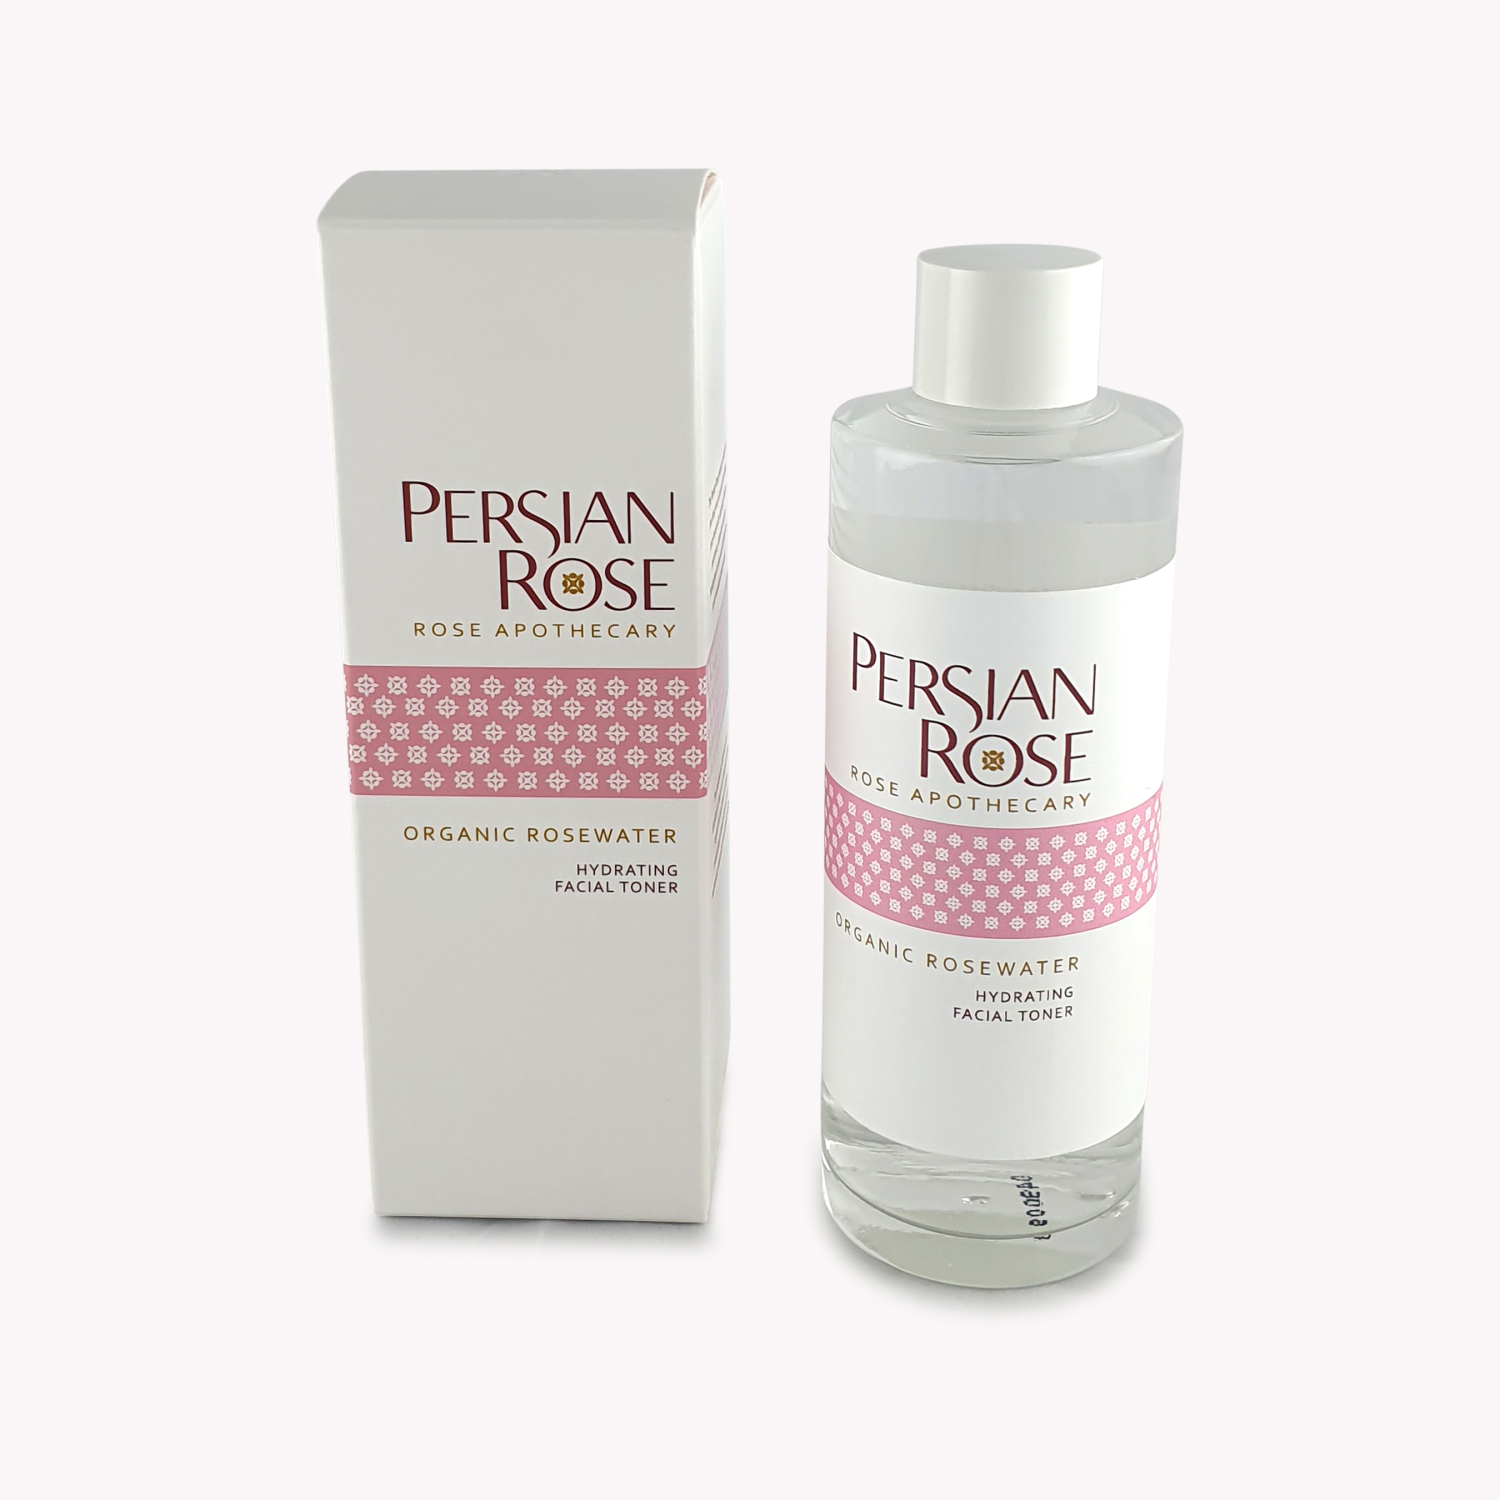 Organic Rosewater Hydrating Facial Toner Bottle and Packaging